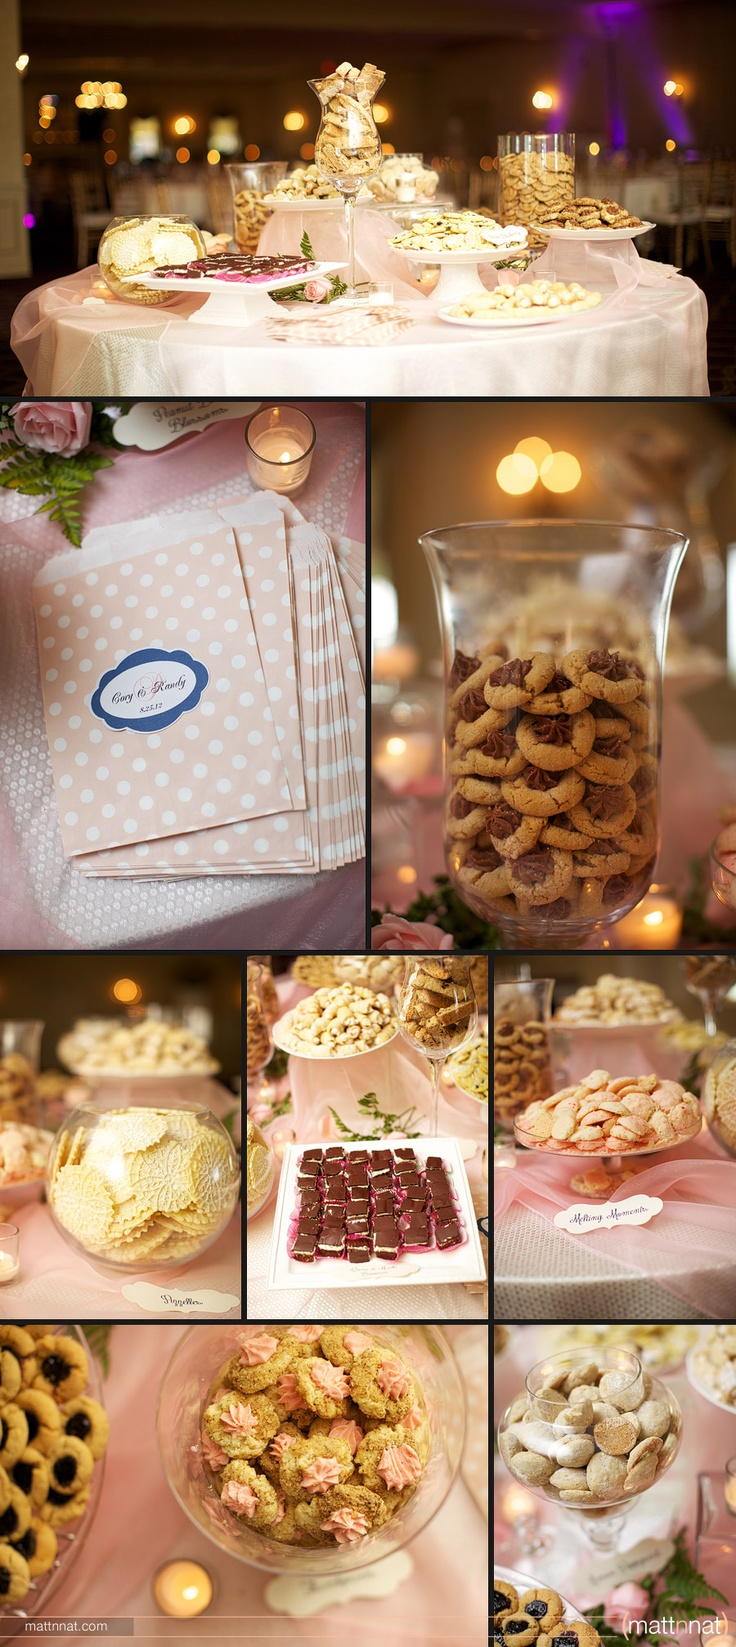 Cookie table for wedding reception... i guess this is a Pittsburgh tradition. family and friends of the bride & groom bake tons of cookies for the wedding reception... its like christmas!! what a cool idea :)